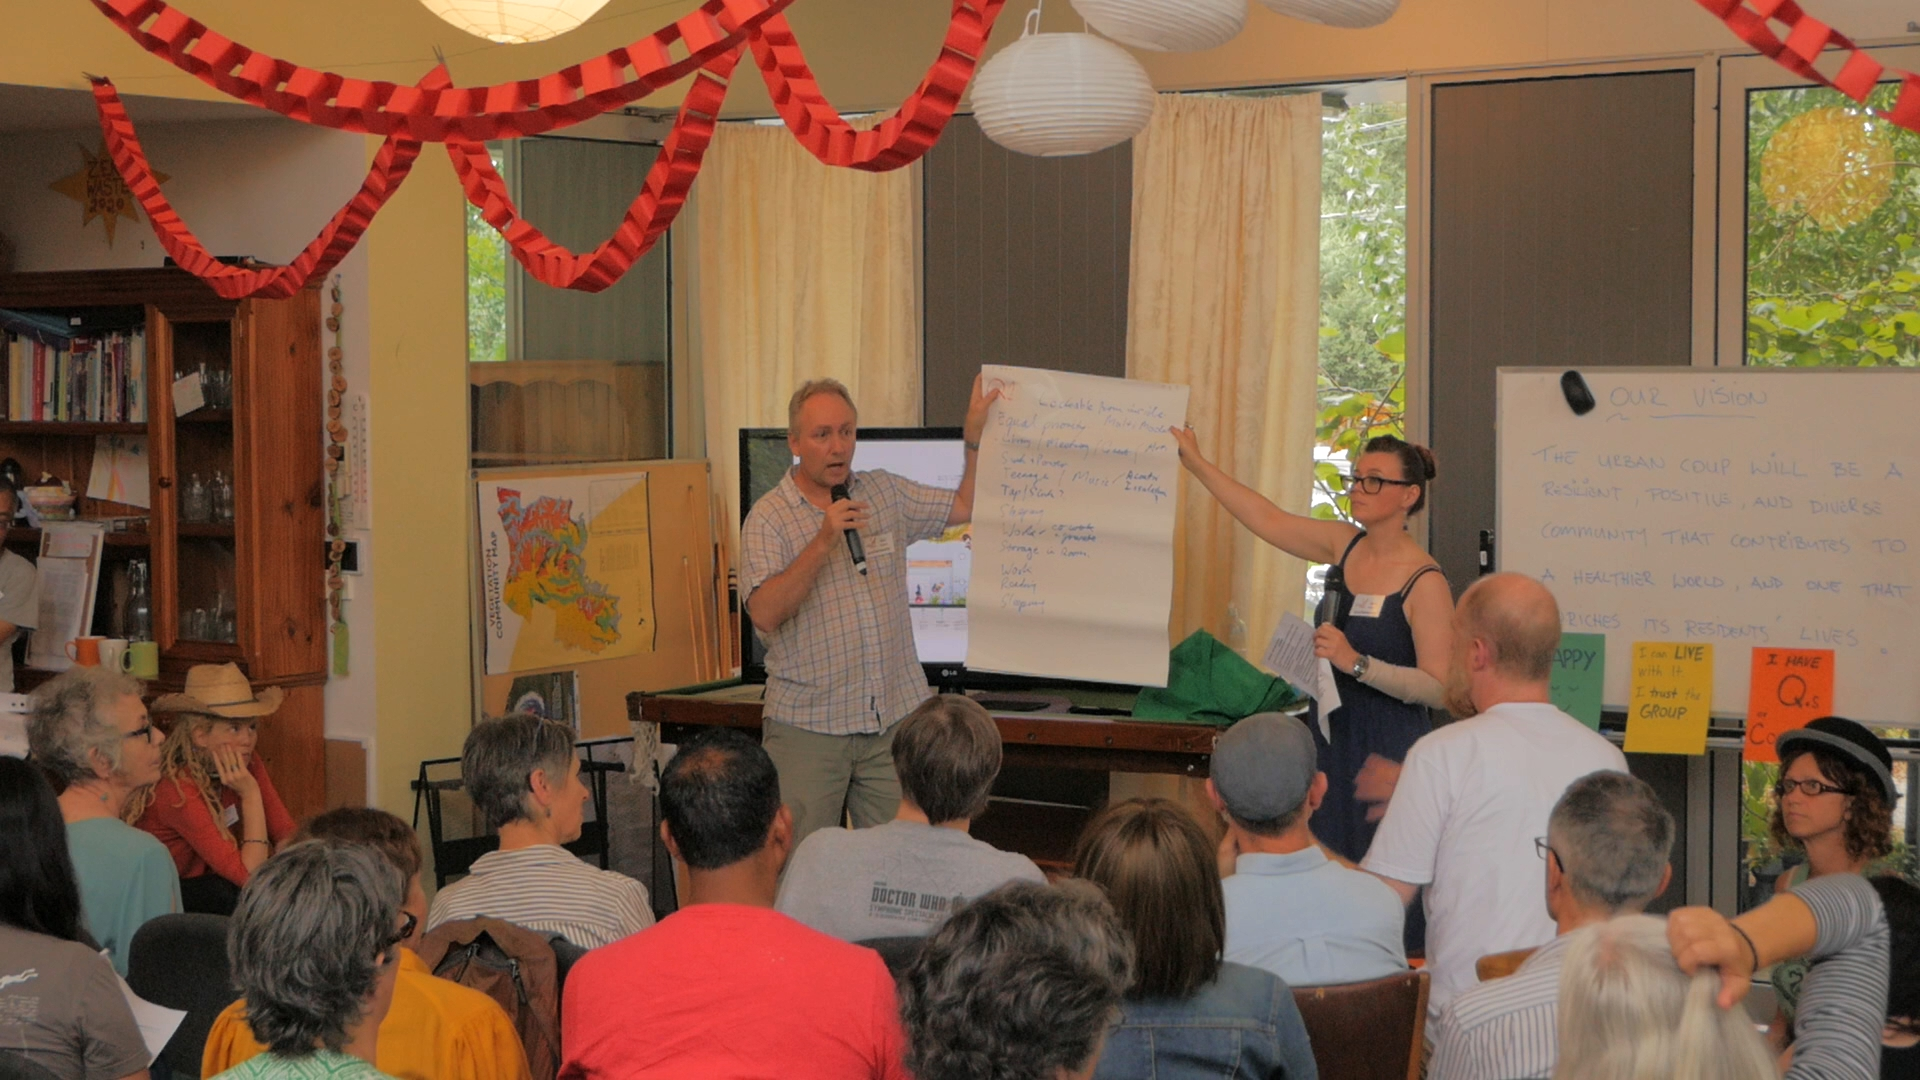 Members of Urban Coup attend a workshop to discuss the development of their co-housing project in Melbourne, Australia.